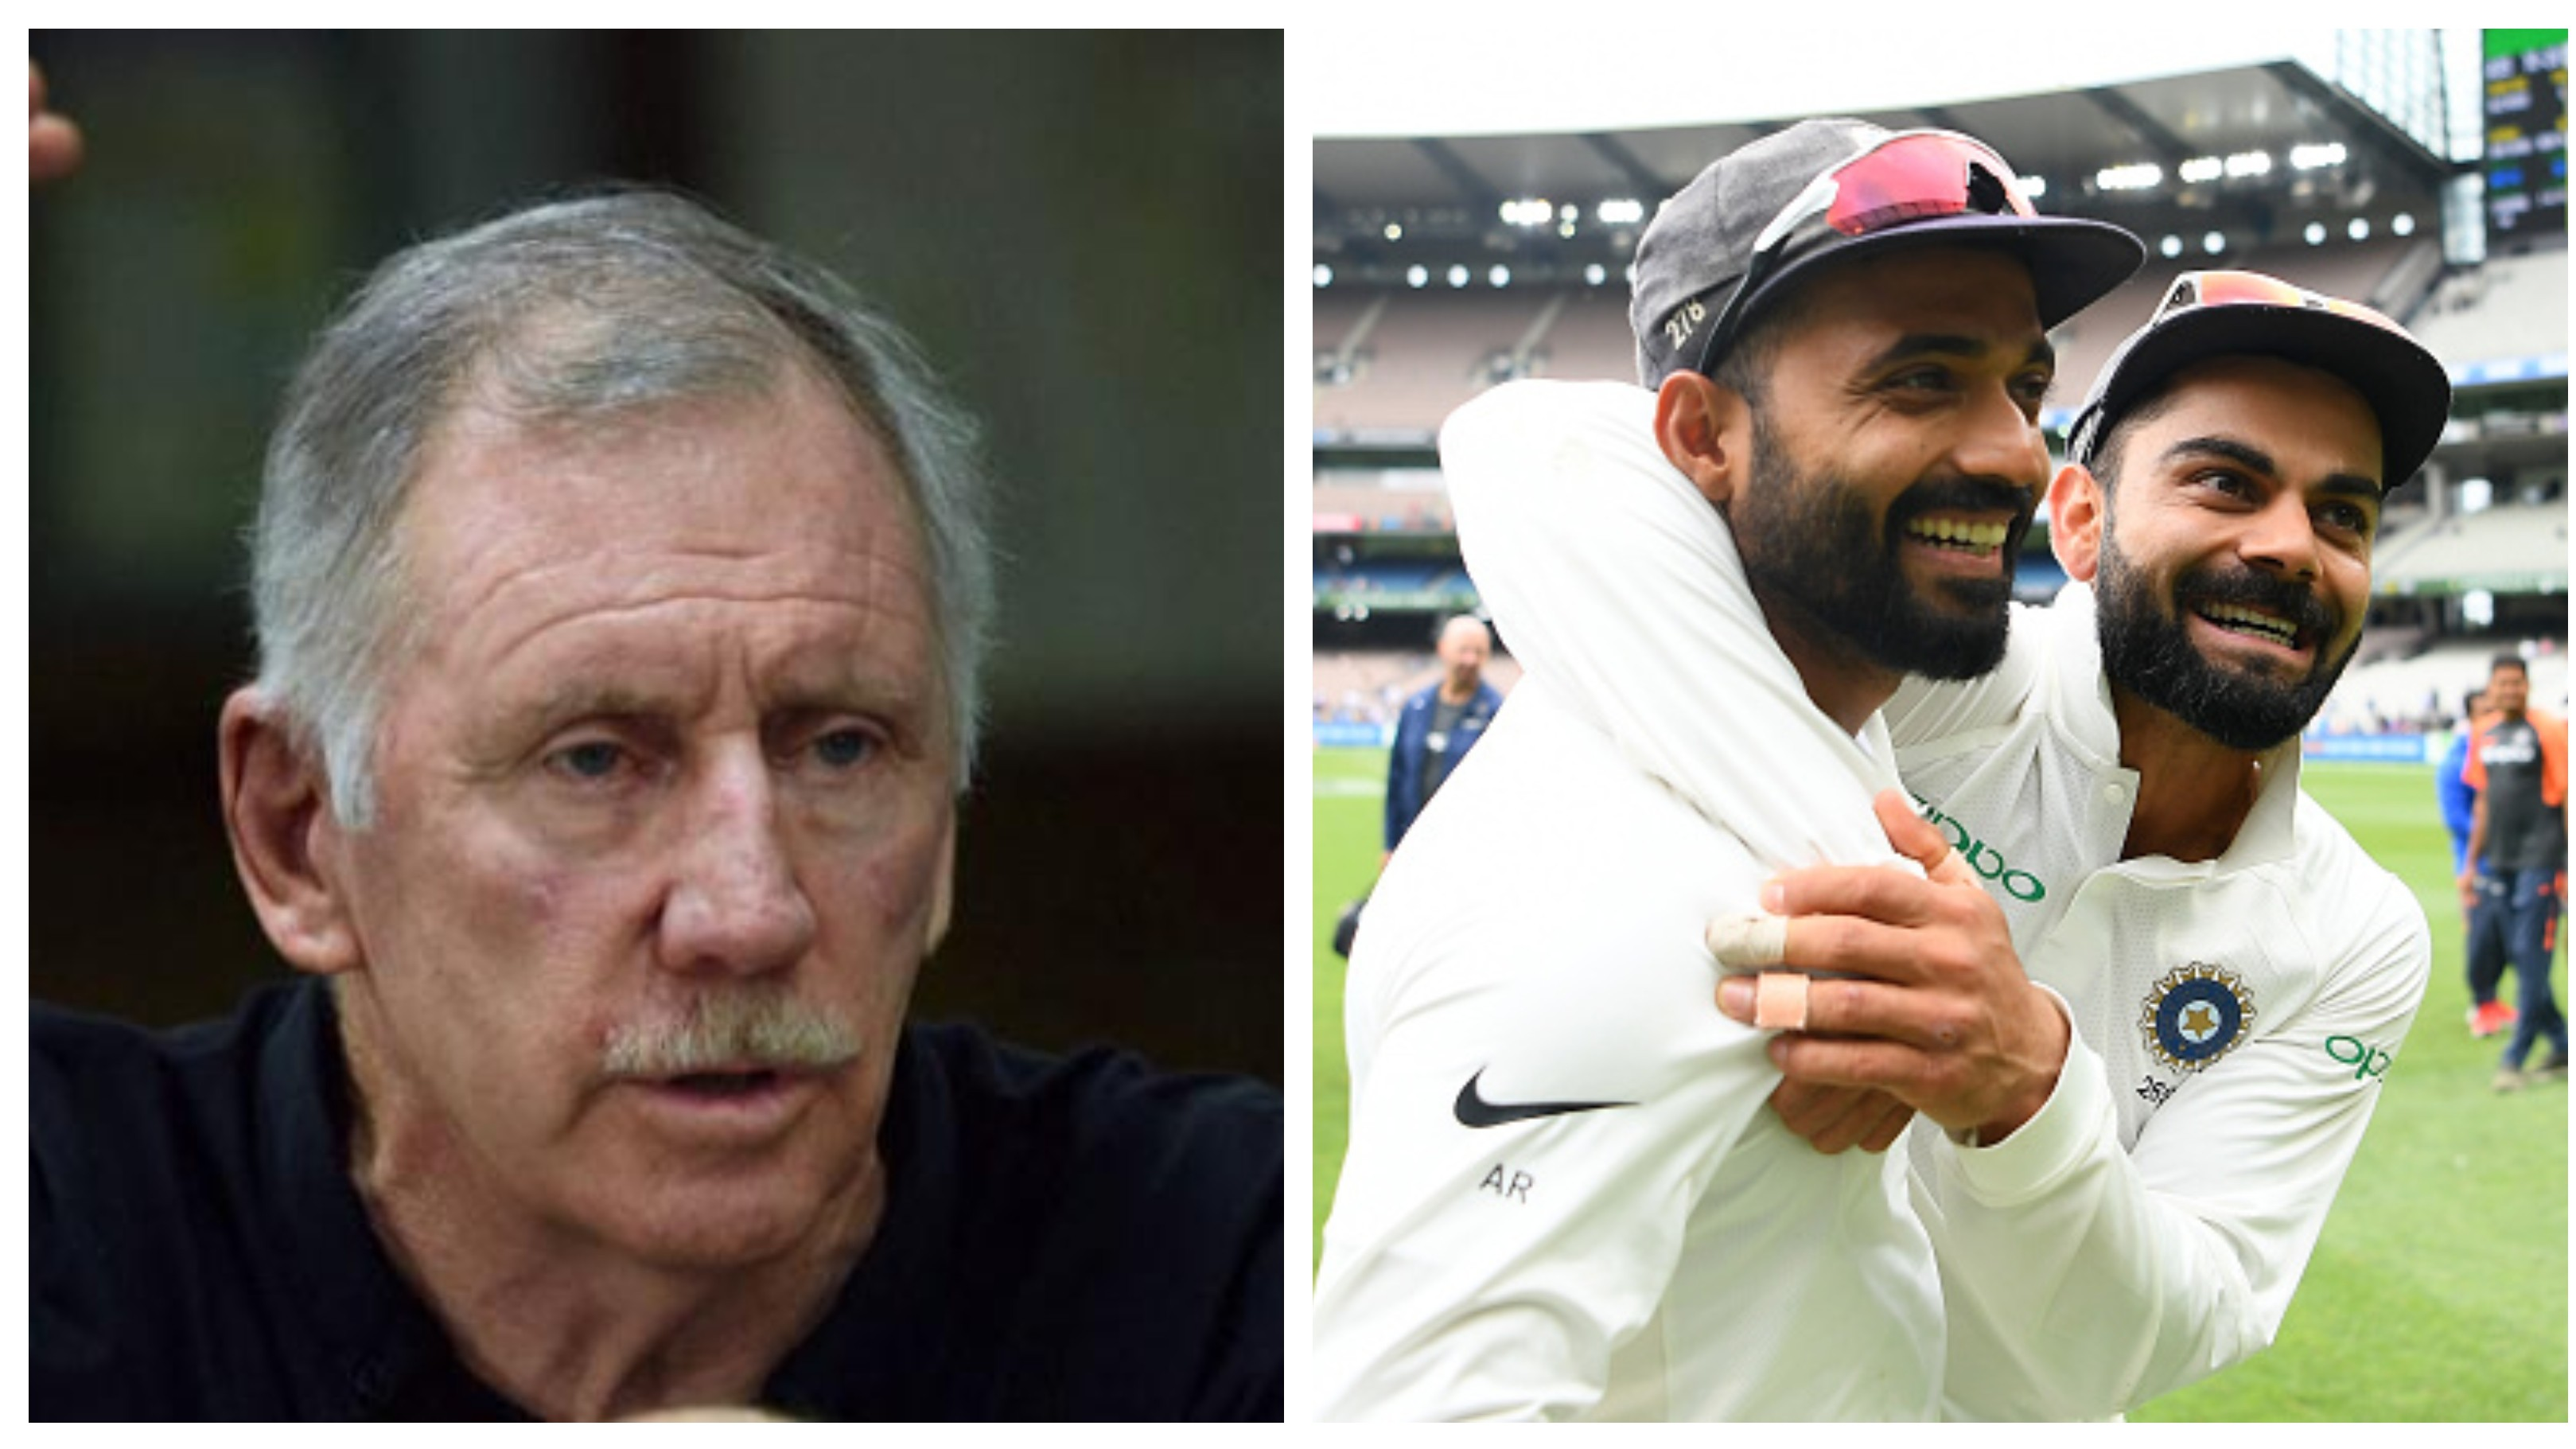 AUS v IND 2020-21: WATCH - Ian Chappell backs Ajinkya Rahane to fill Virat Kohli's void in the Test series